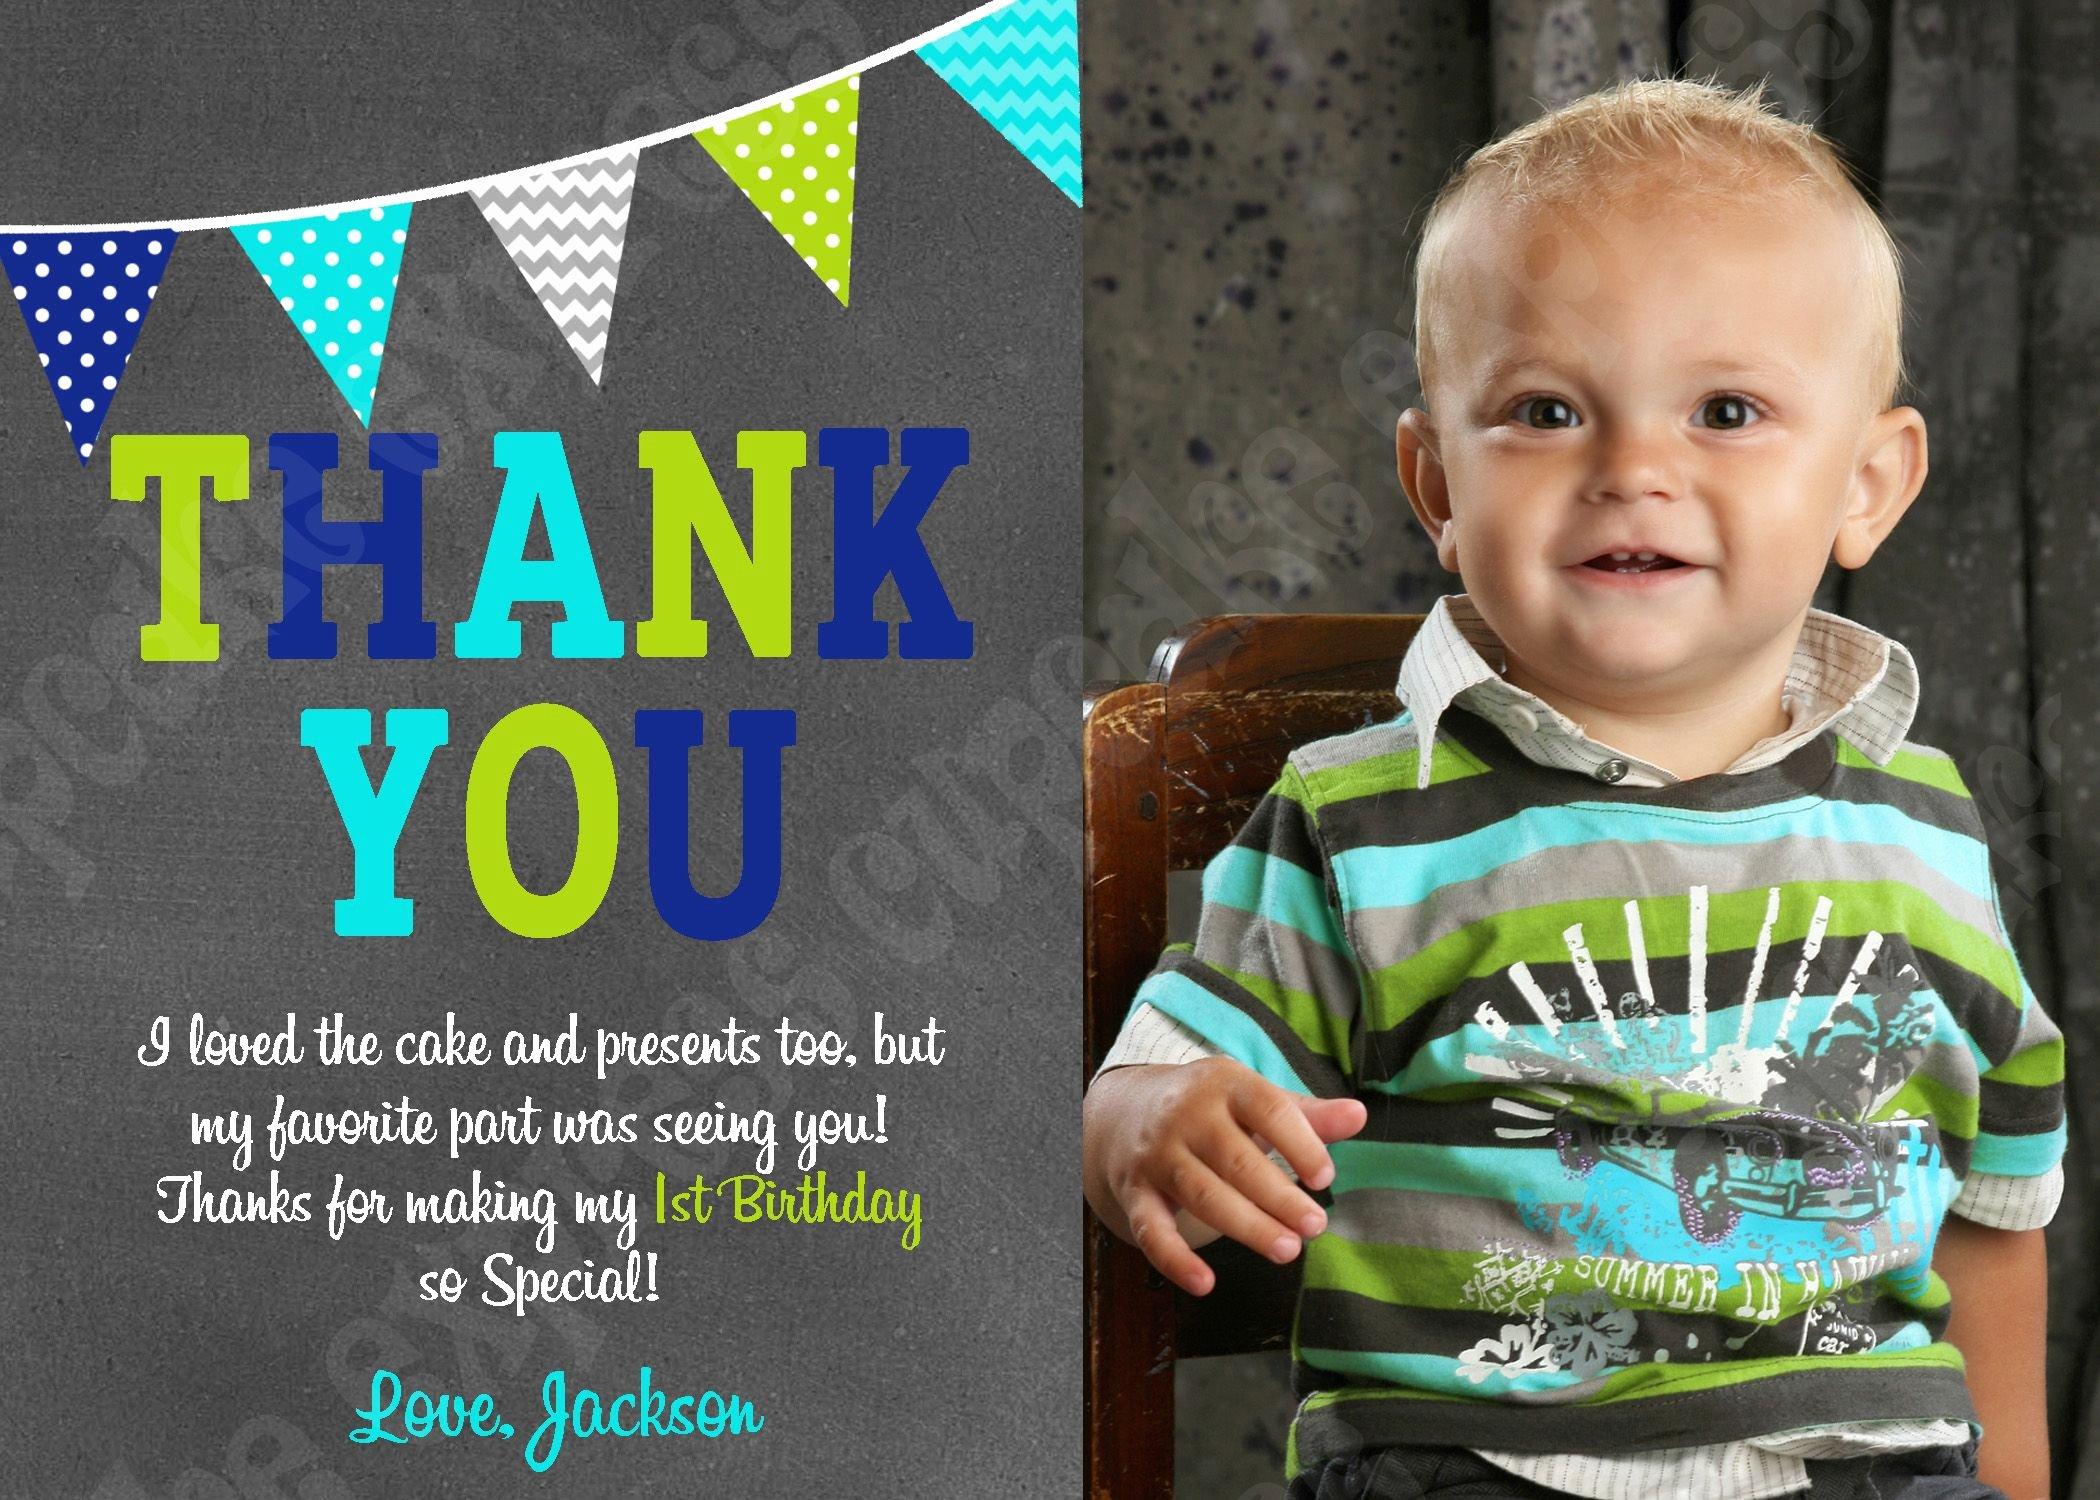 First Birthday Thank You Cards Awesome Little Man Mustache Boys First Birthday Thank You Card Lime Green Navy Blue Grey Chevron Photo